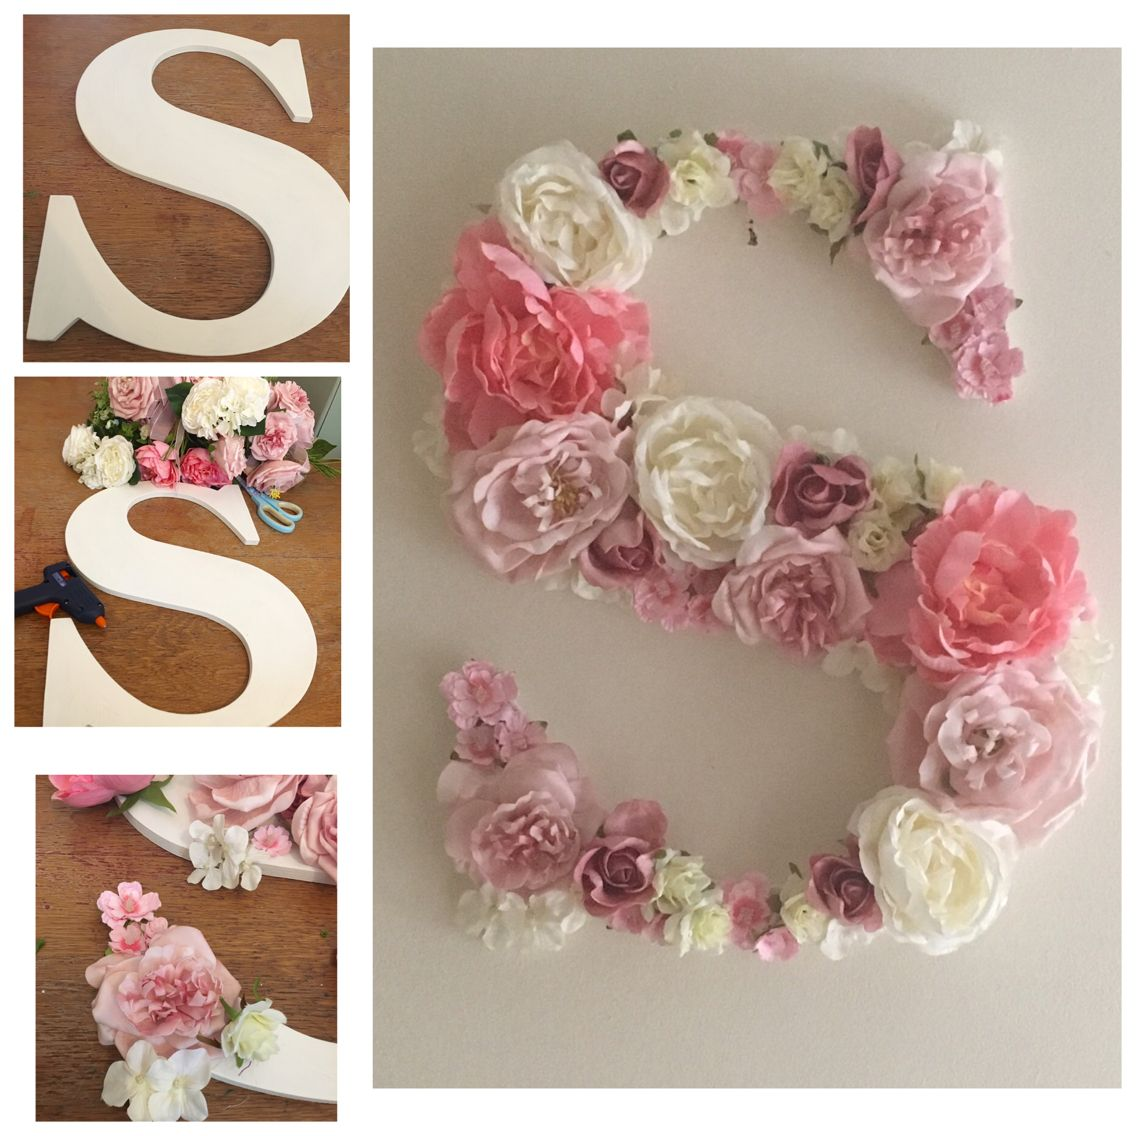 Wooden S Letter decorated with Silk Flowers  Letter a crafts